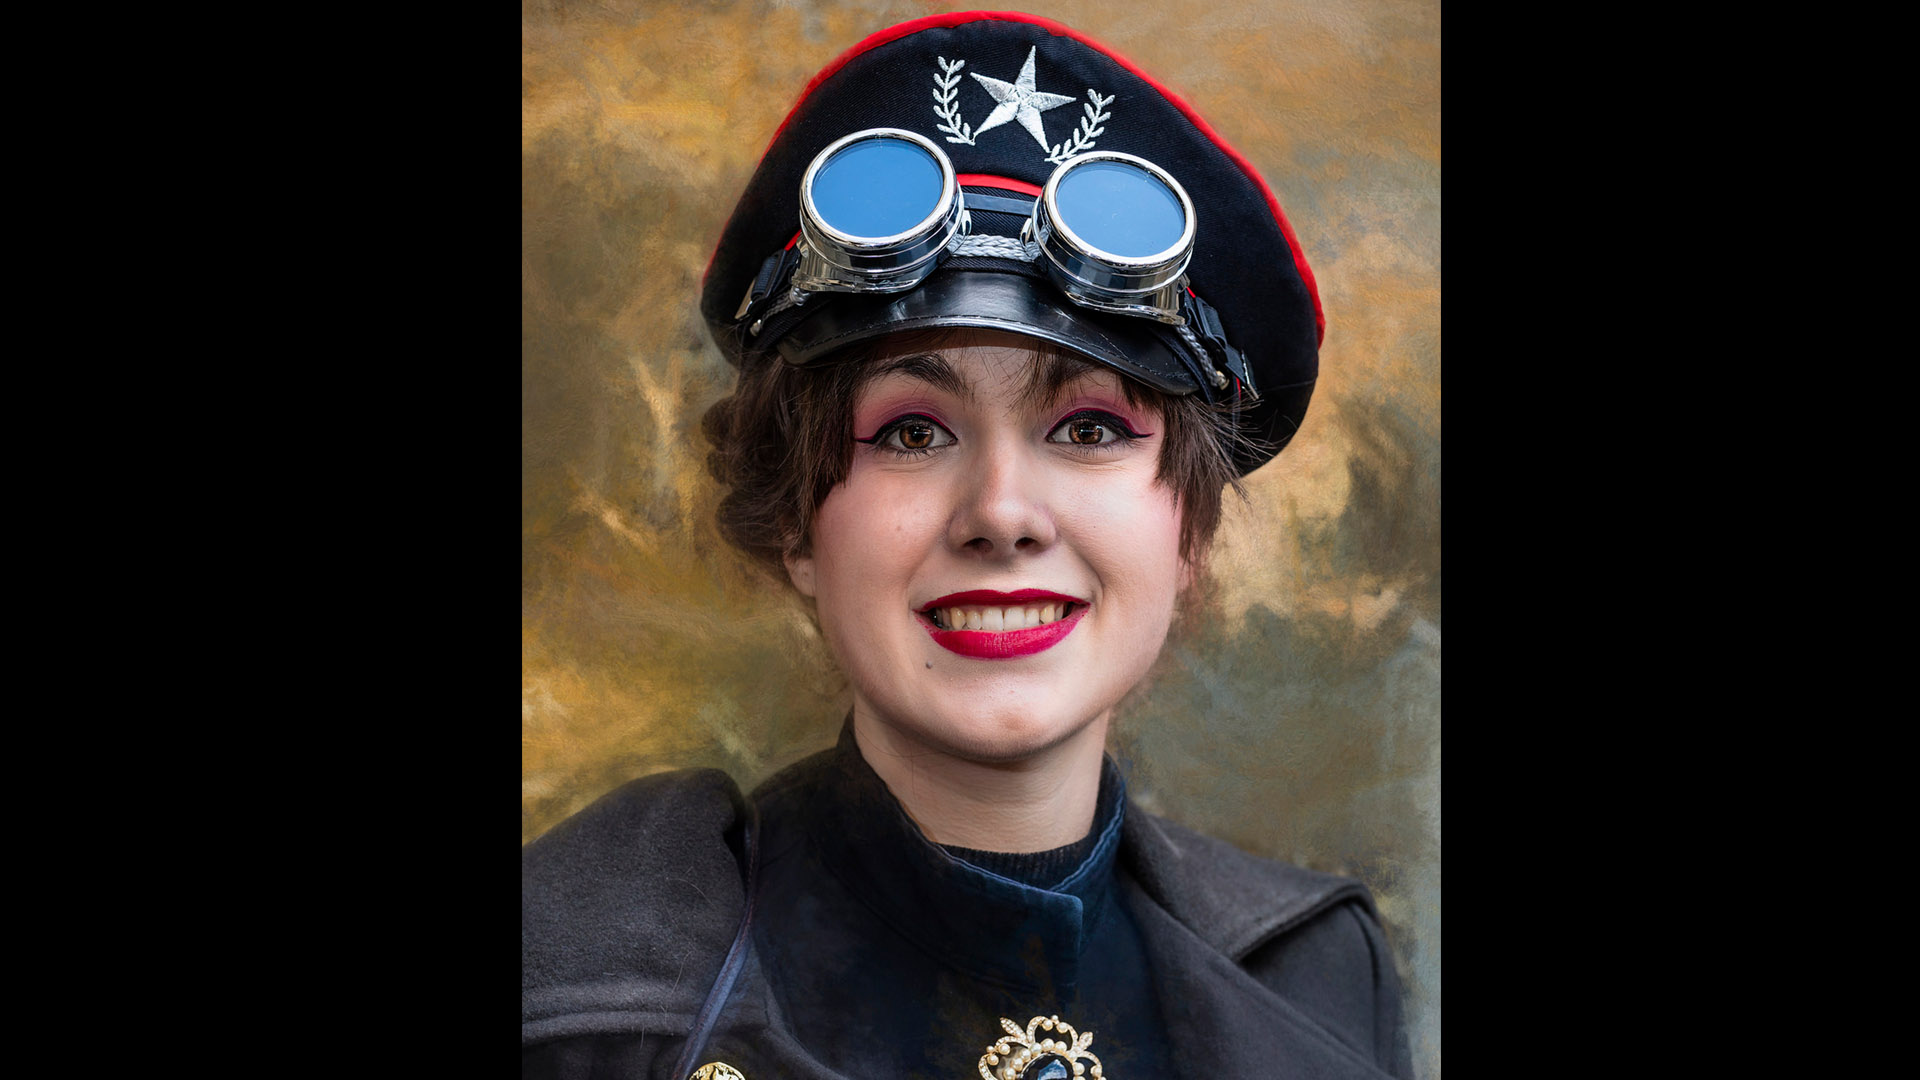 """Ian Lewry's """"Steampunk photo -56"""" earns him Photofocus Photographer of the Day kudos"""